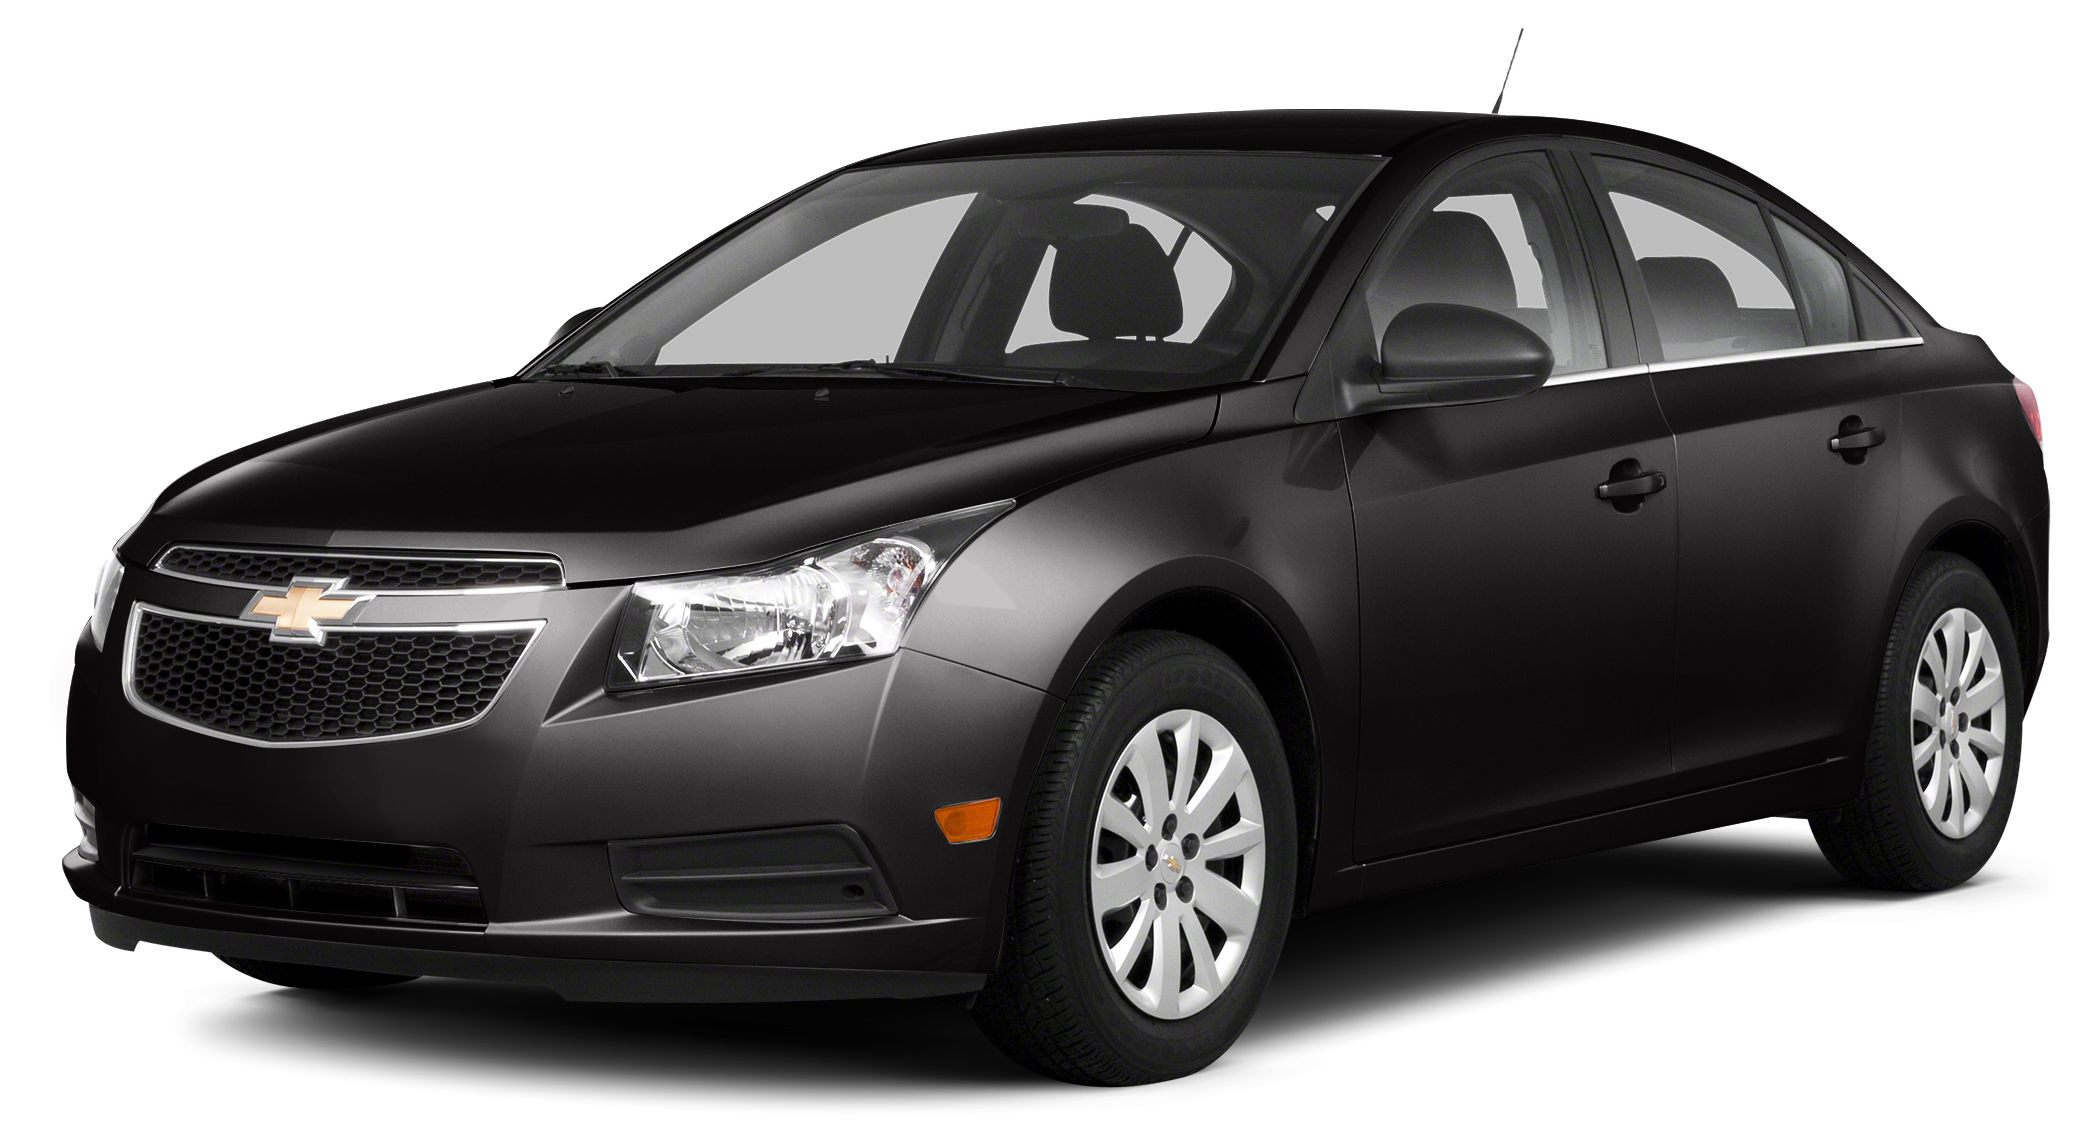 2013 Chevrolet Cruze LS FUEL EFFICIENT 35 MPG Hwy22 MPG City Head Airbag AUDIO SYSTEM iPodMP3